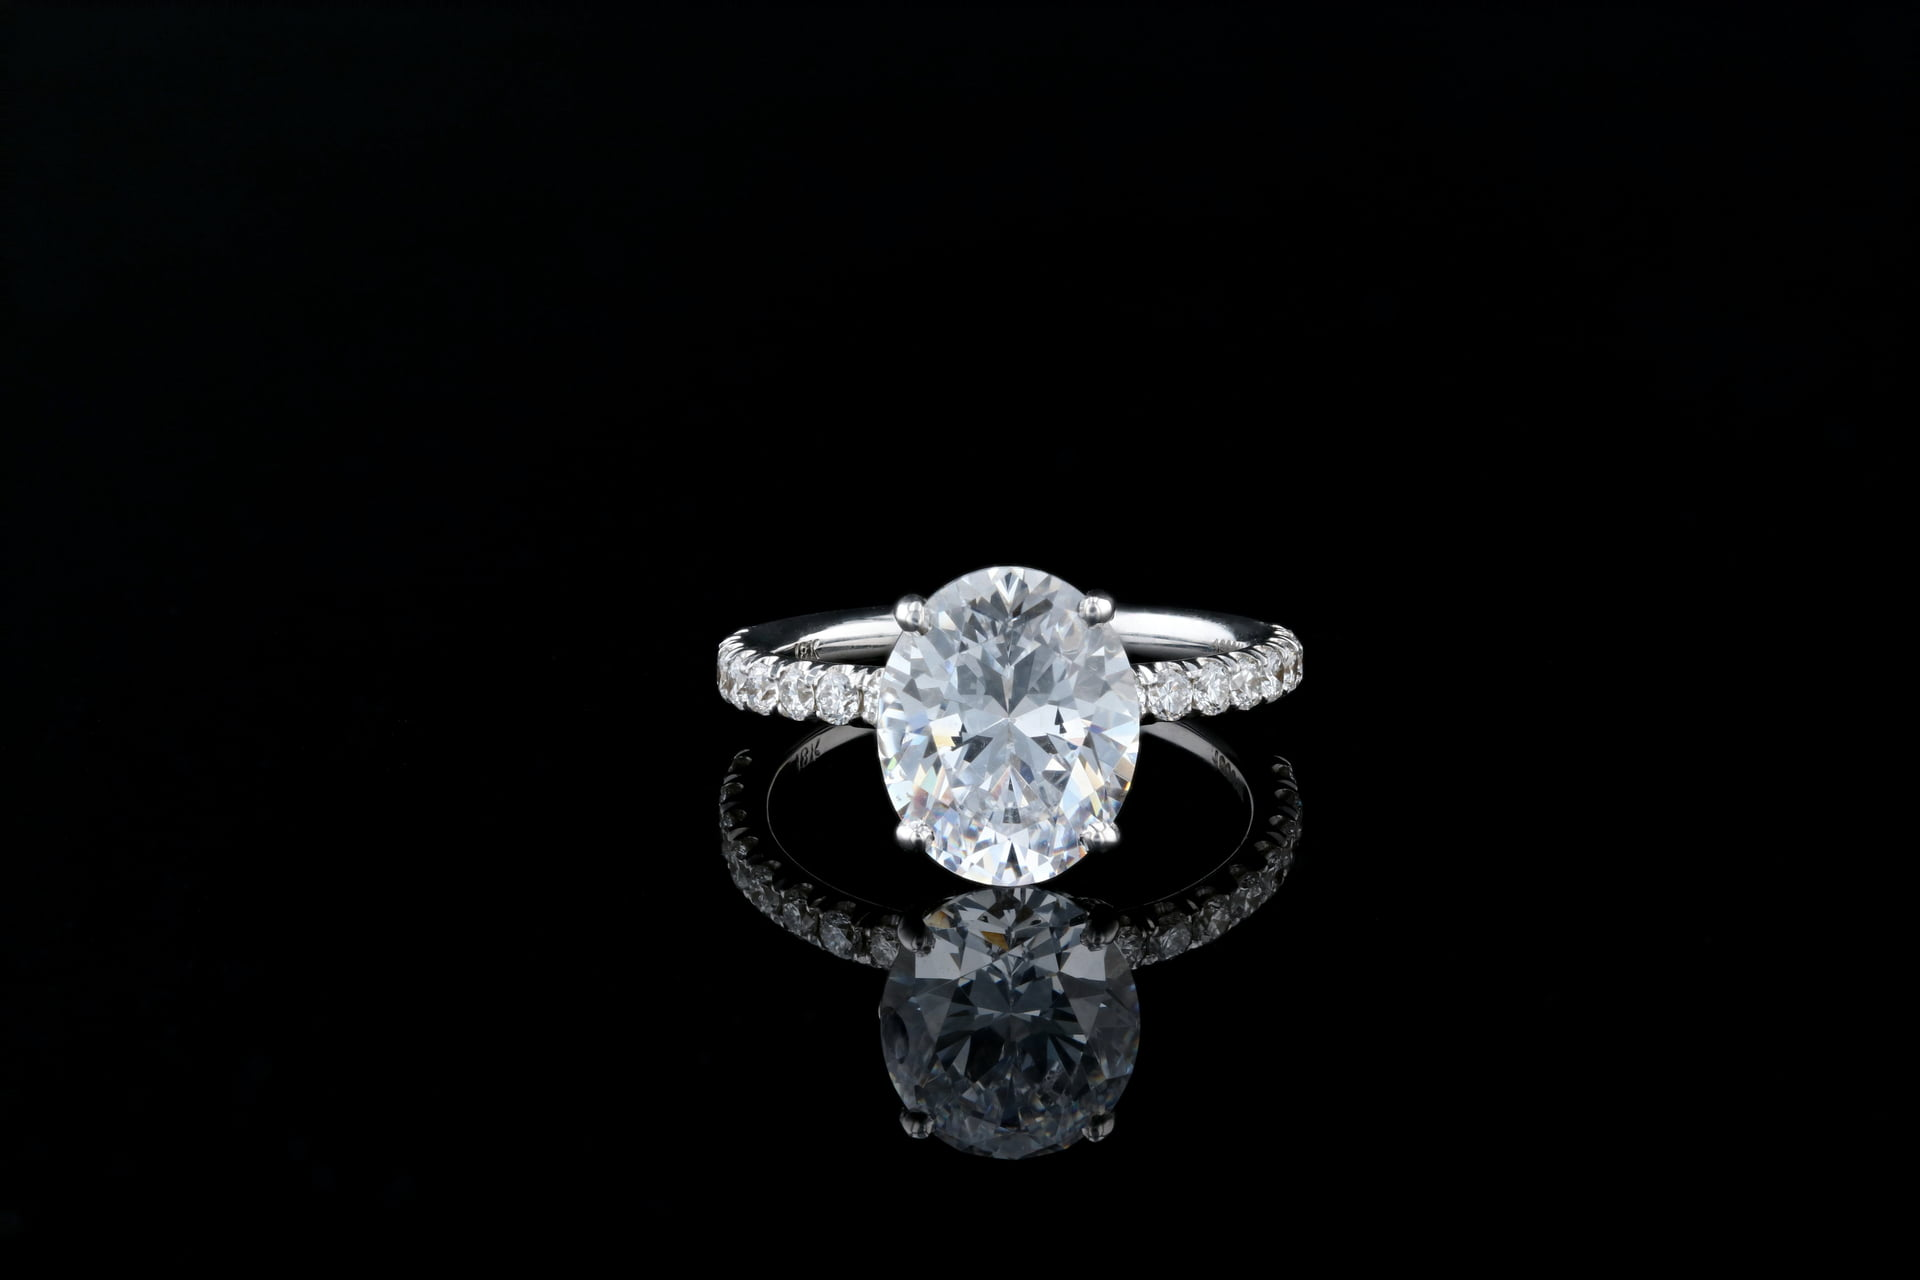 Basket Setting Solitaire Oval Diamond Ring Nathan Alan Jewelers